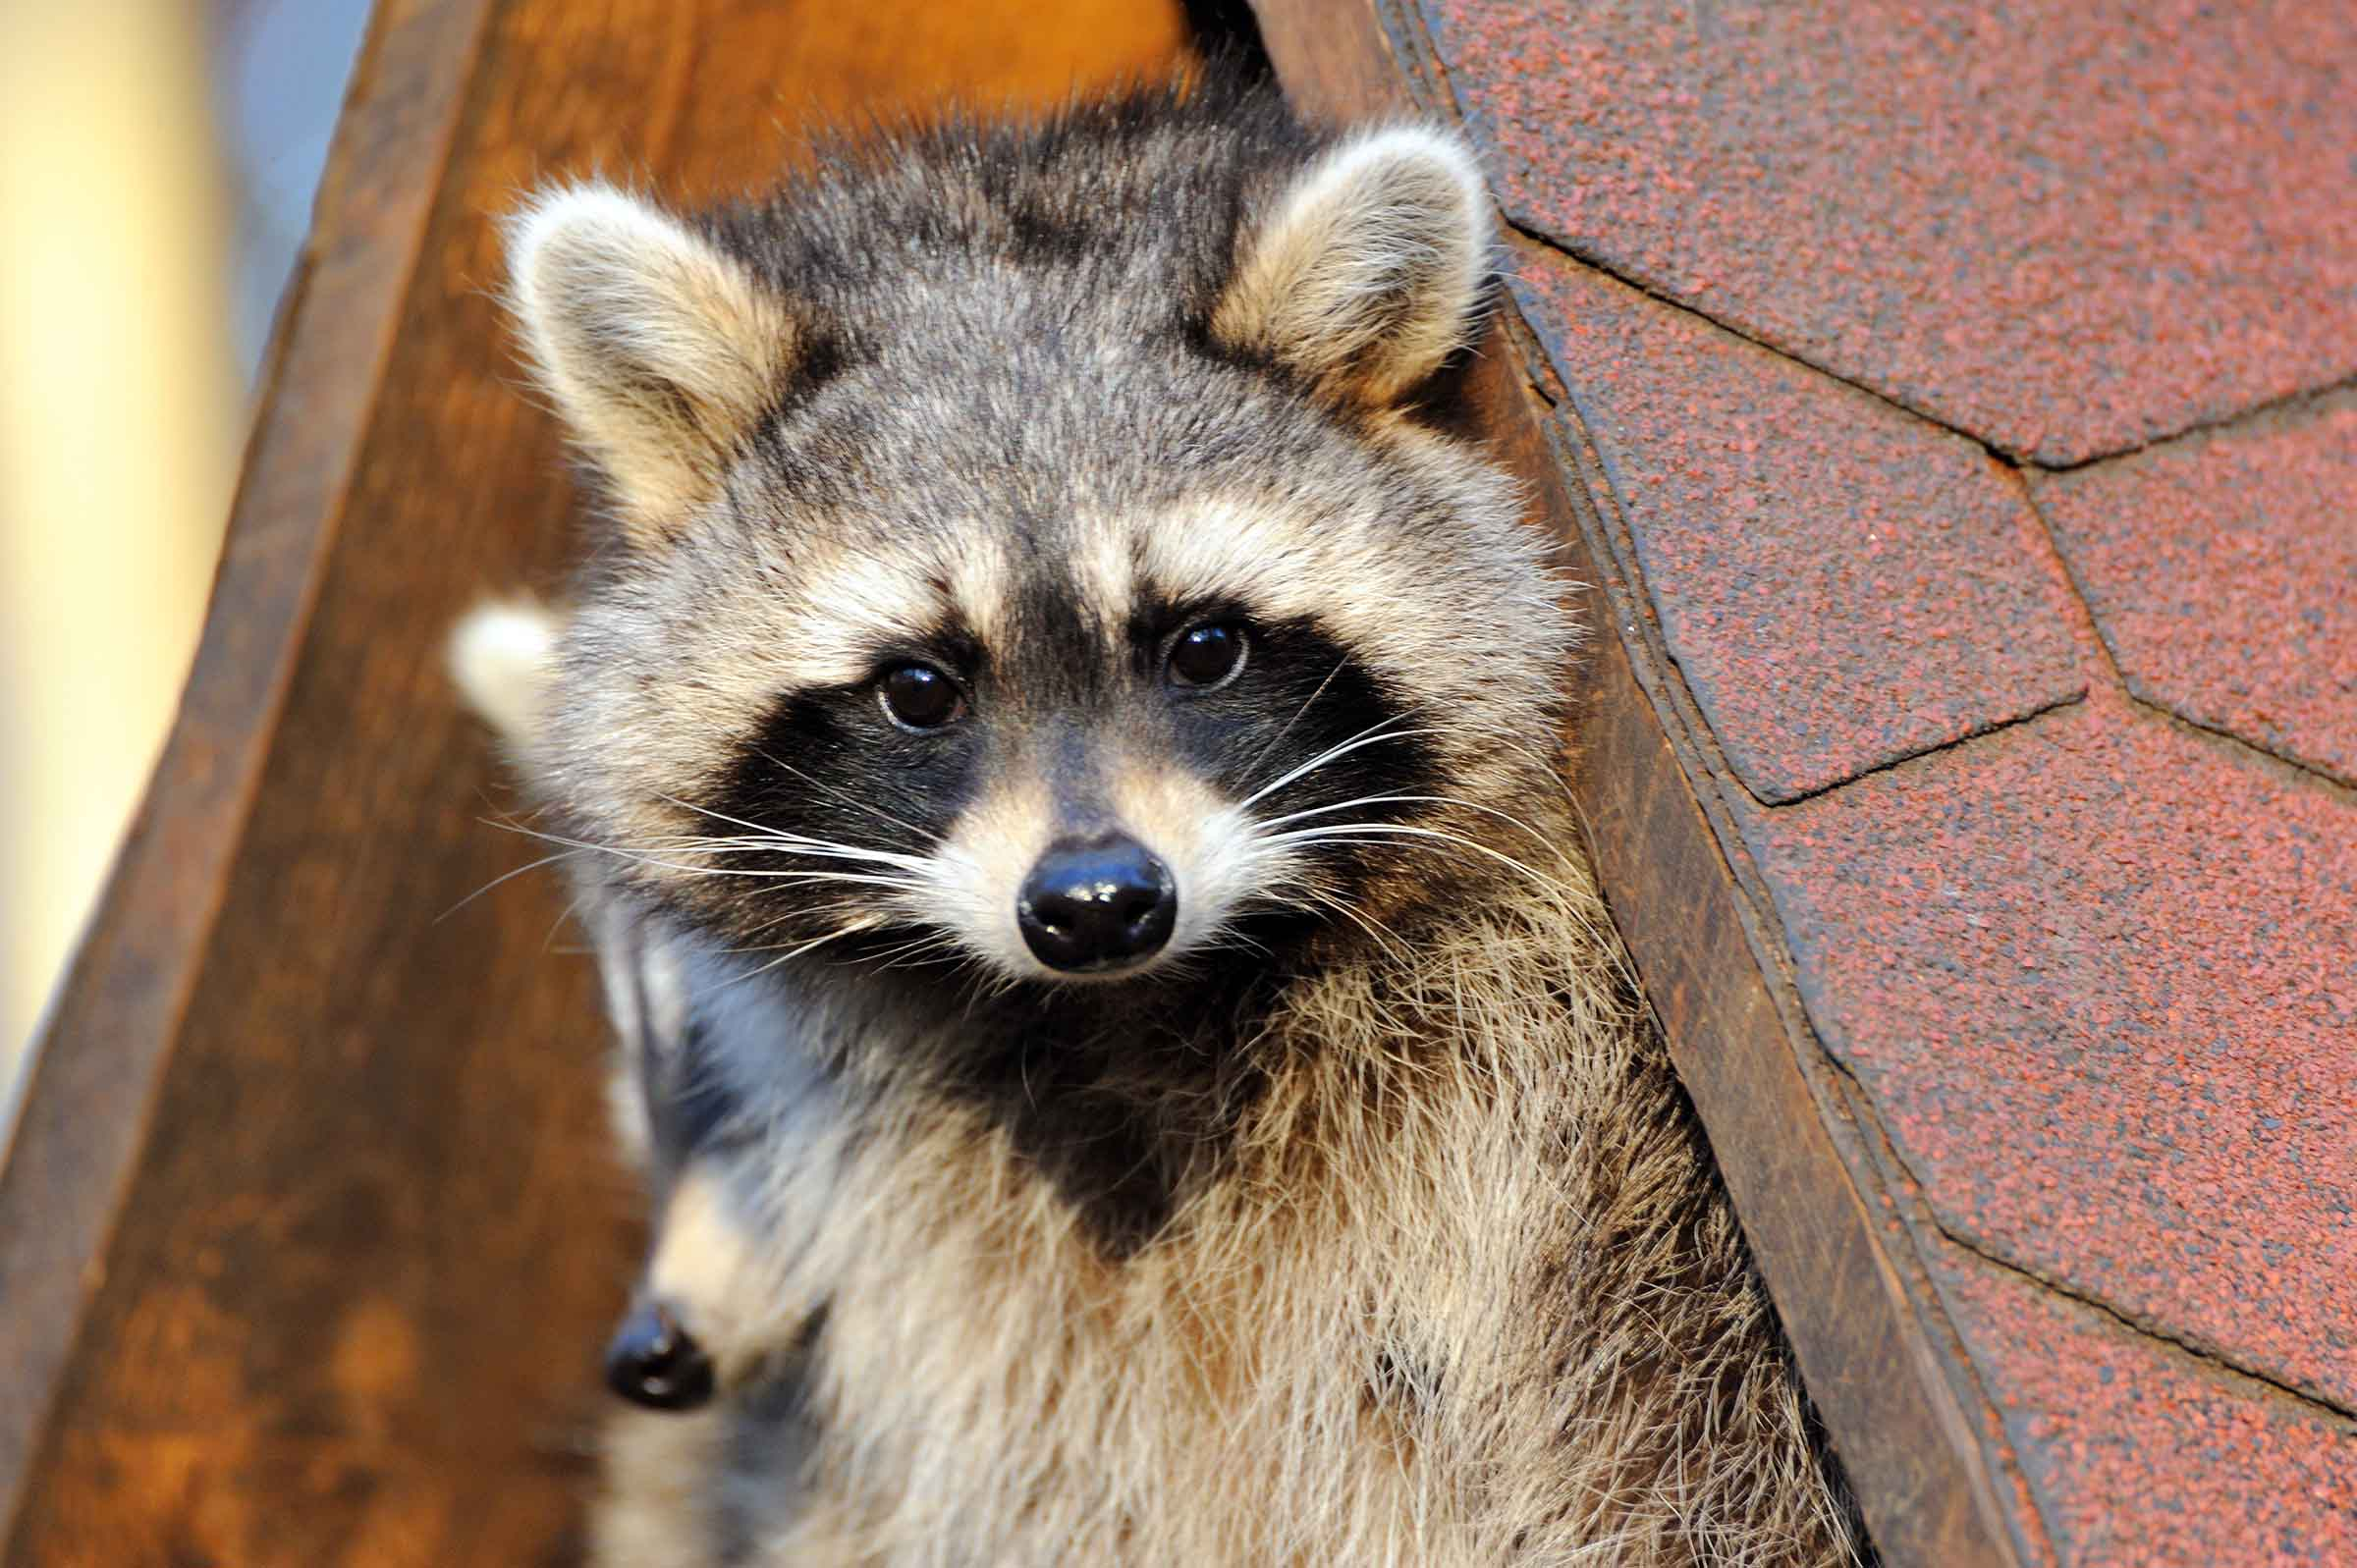 raccoons getting in as part of wildlife pest control